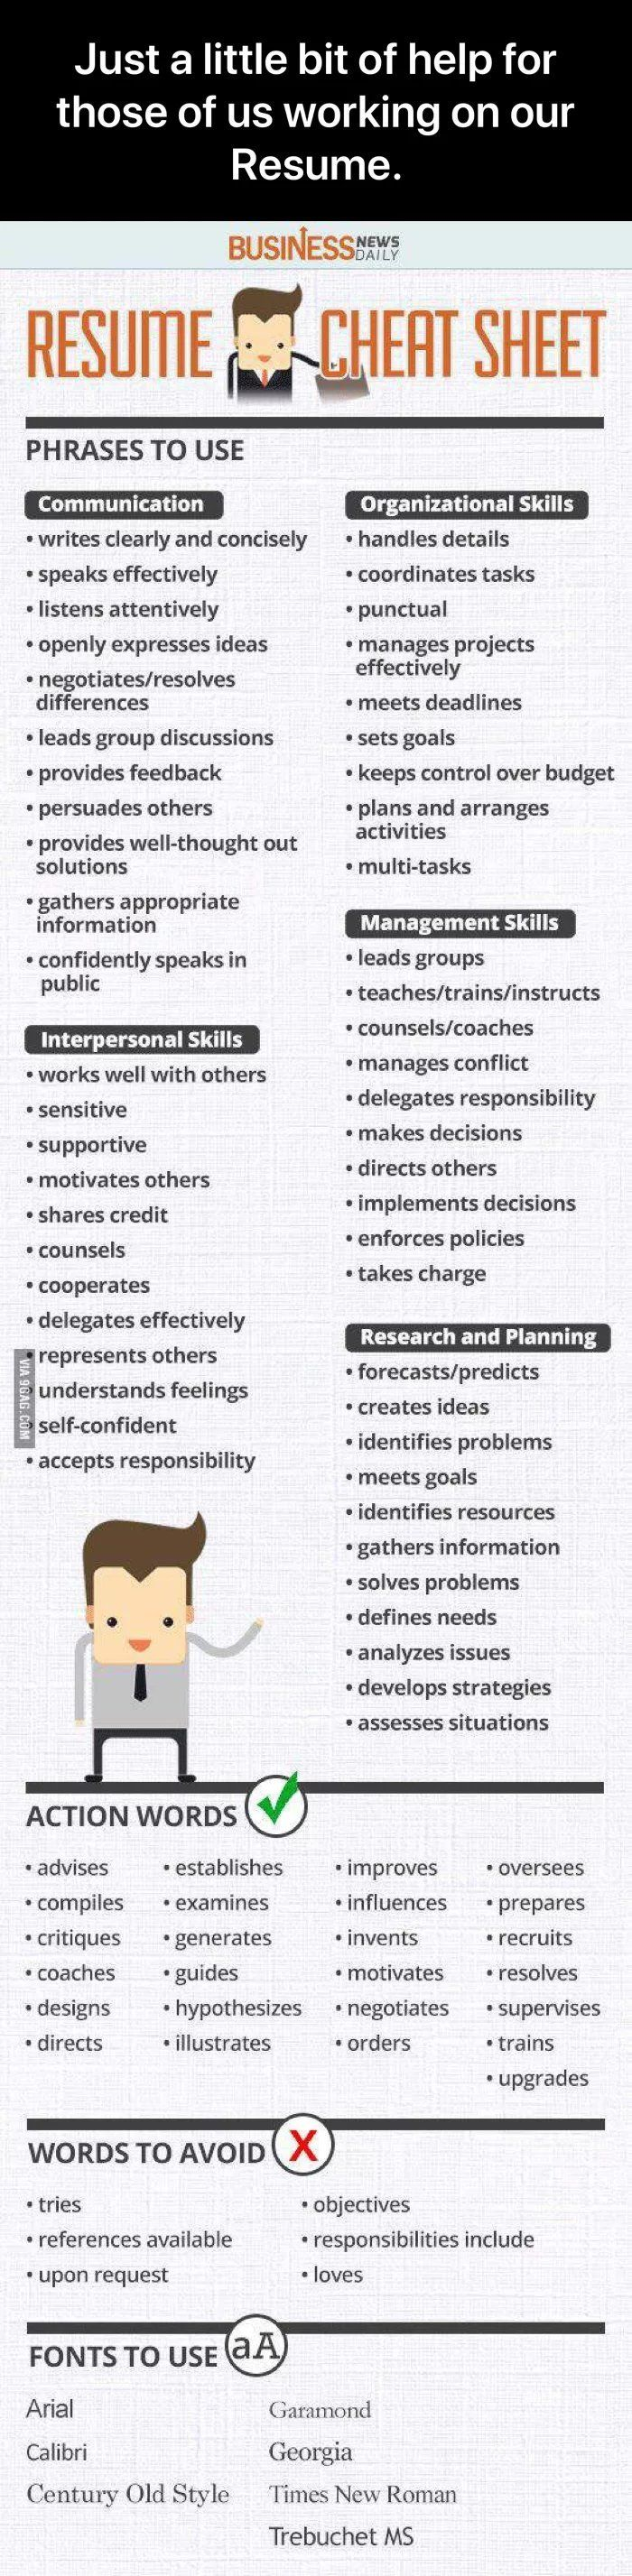 r/coolguides Help for a Resume Management skills